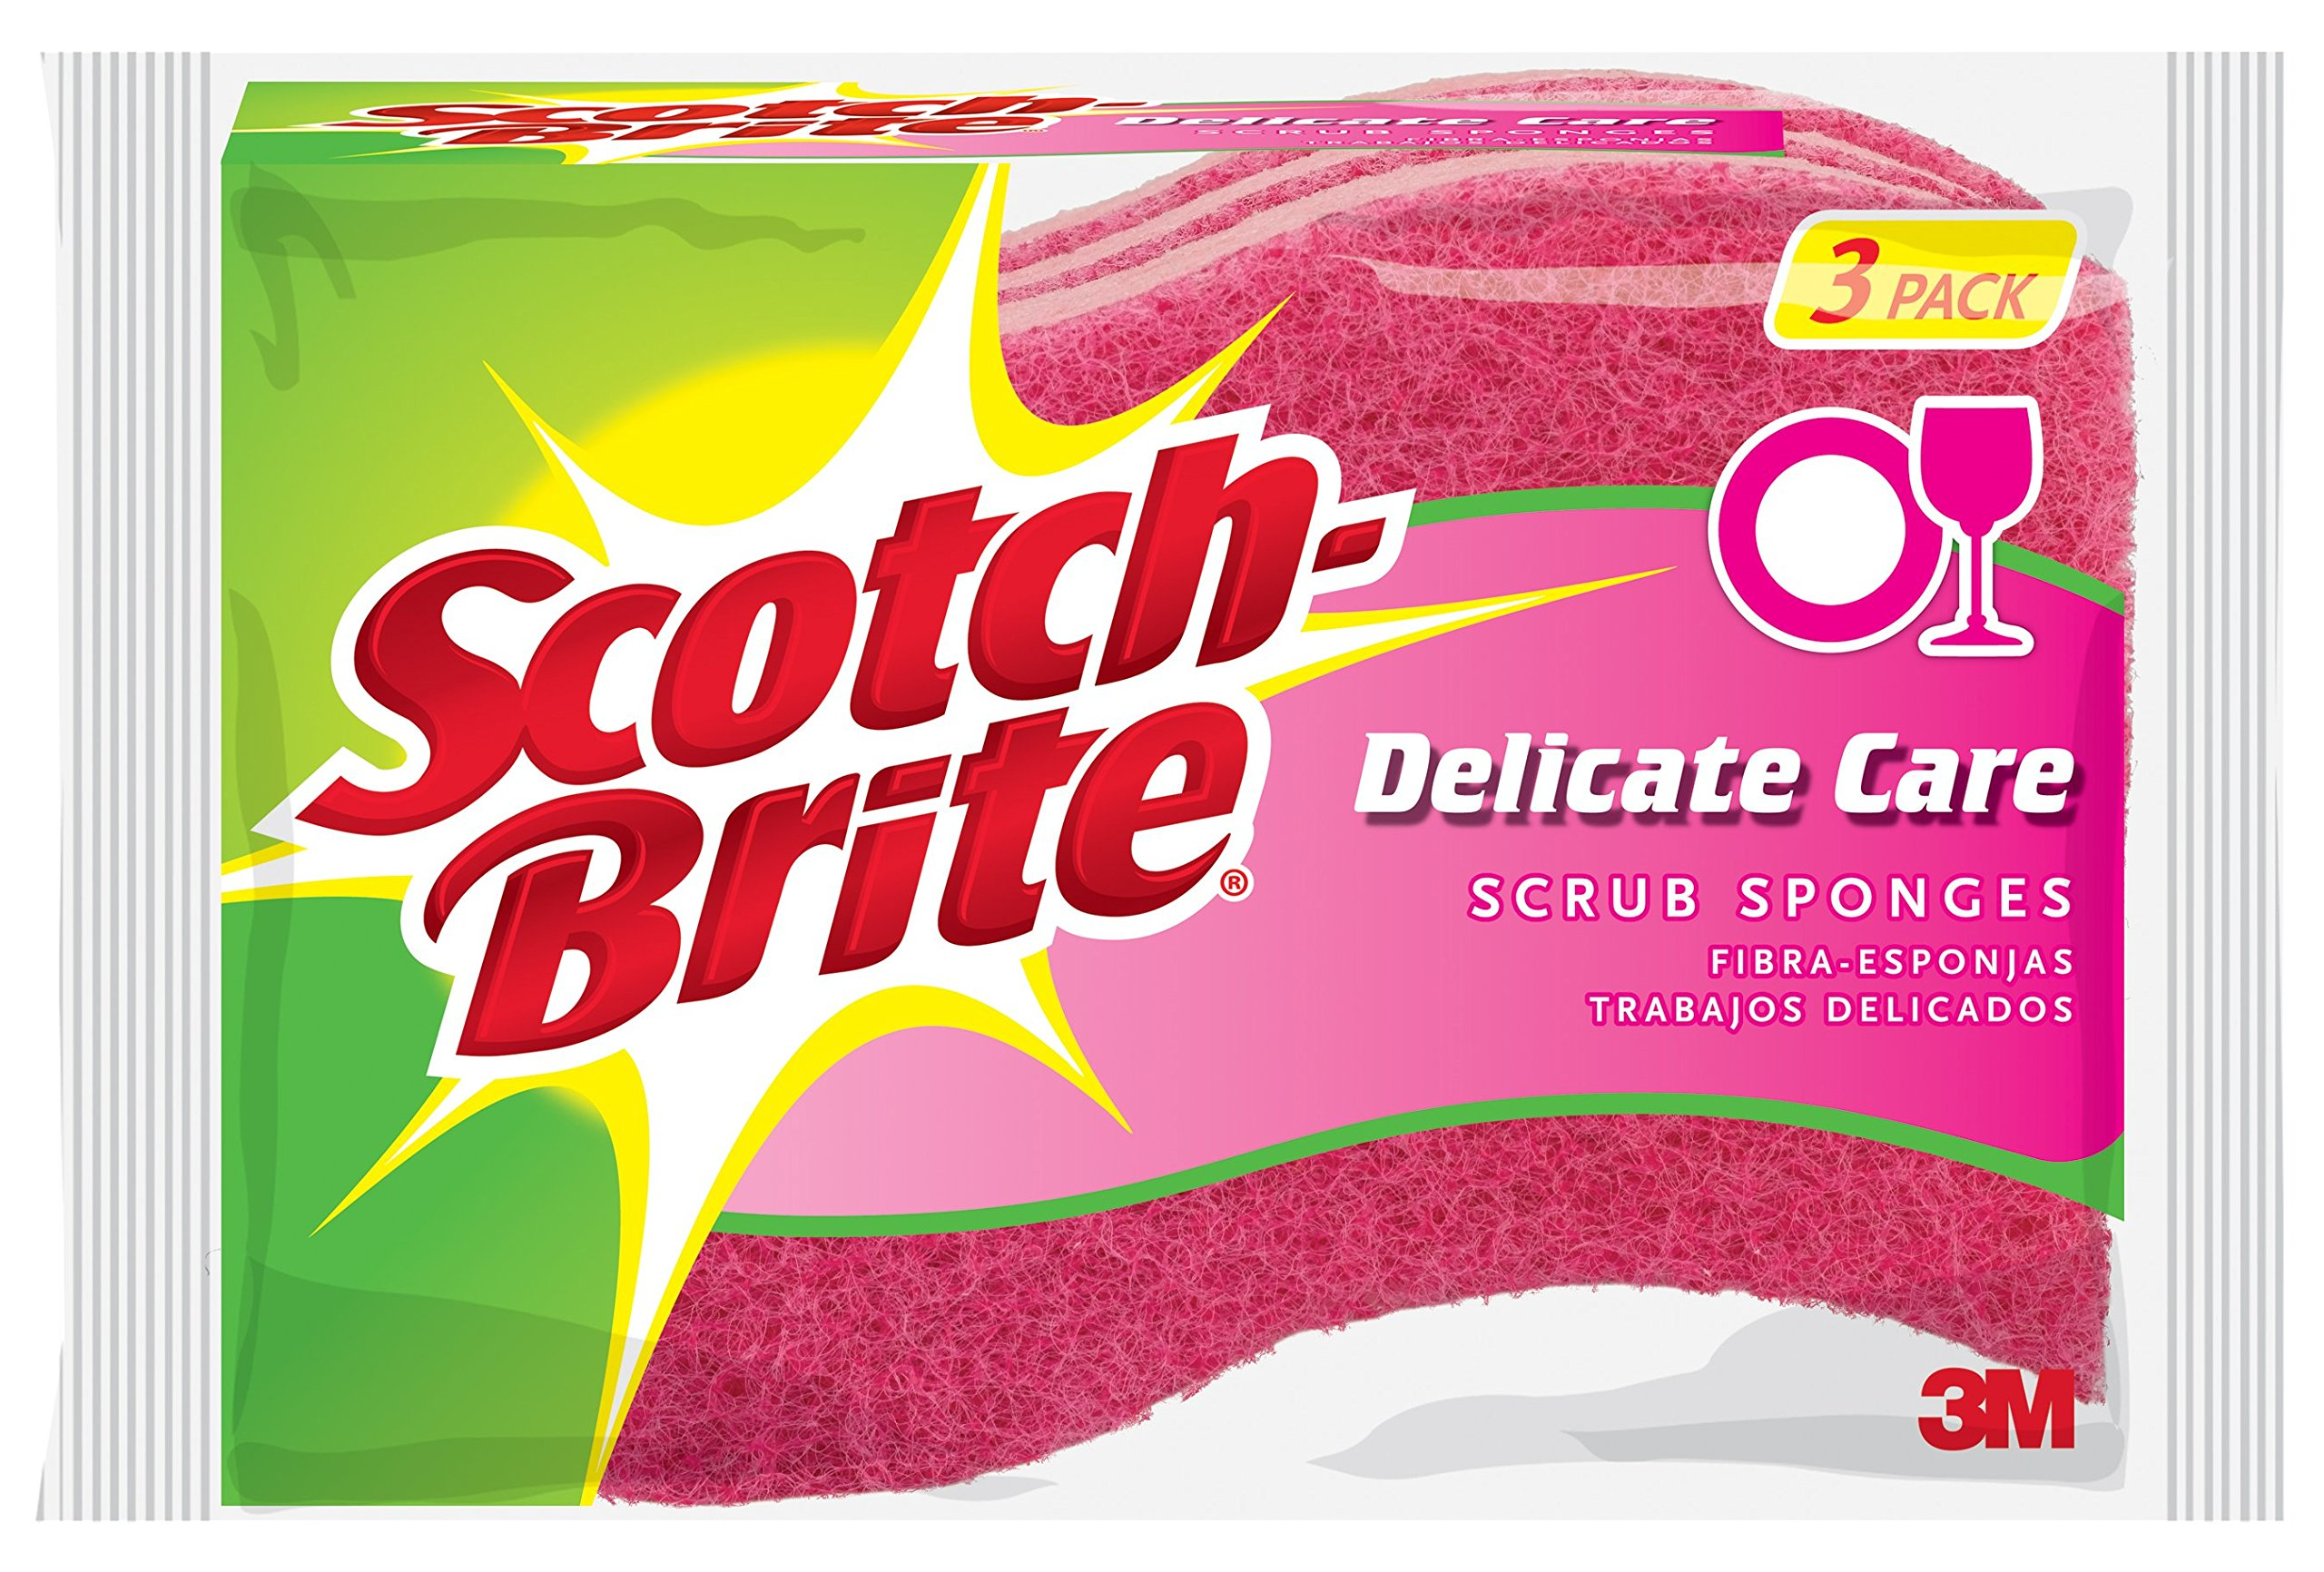 Scotch-Brite Delicate Care Scrub Sponge, 3-Sponges/Pk, 8-Packs (24 Sponges Total) by Scotch-Brite (Image #1)